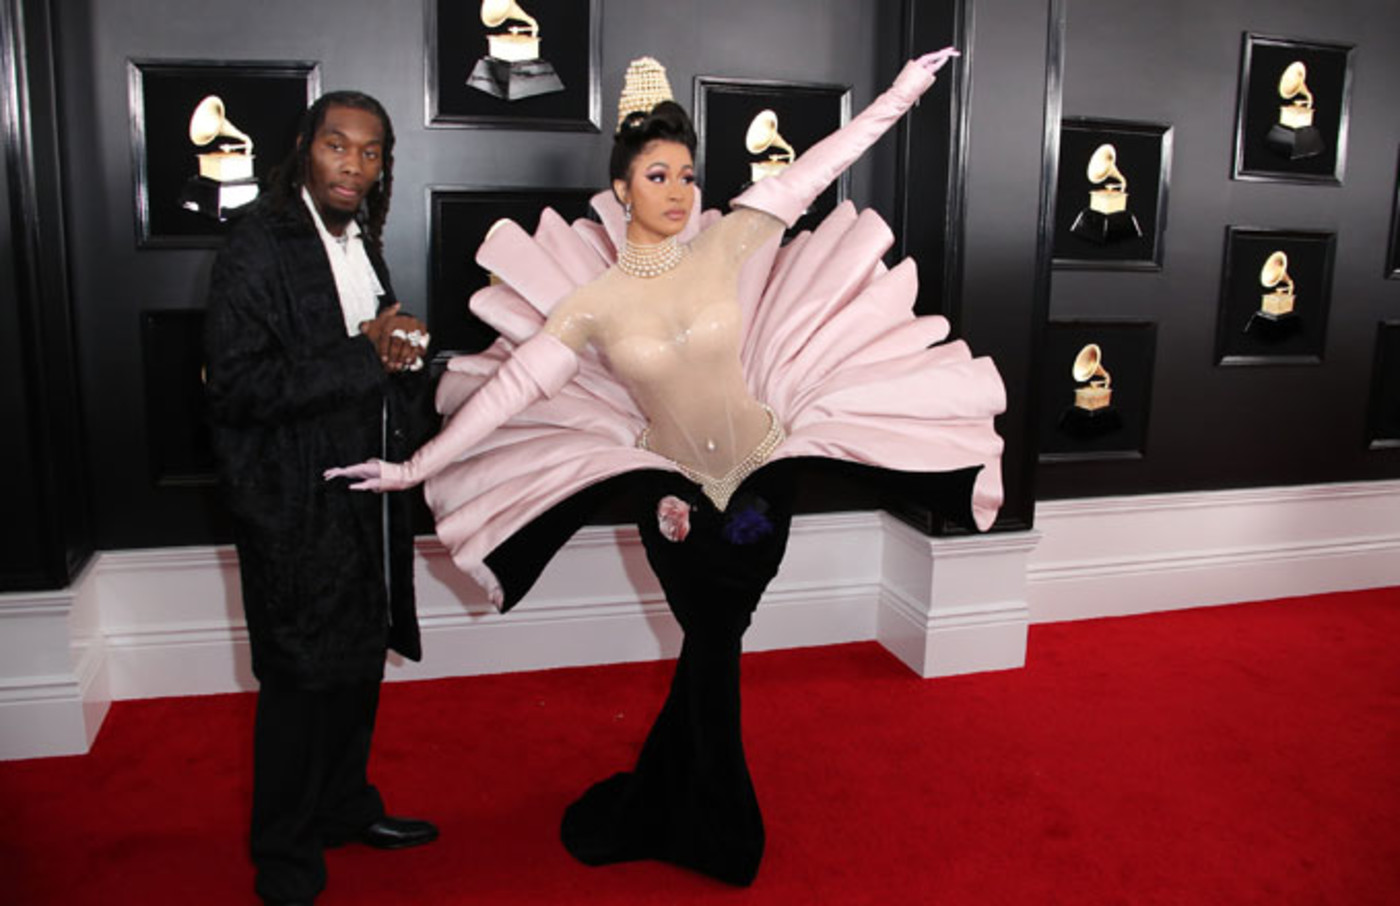 Cardi B and Offset on the red carpet for the Grammys.